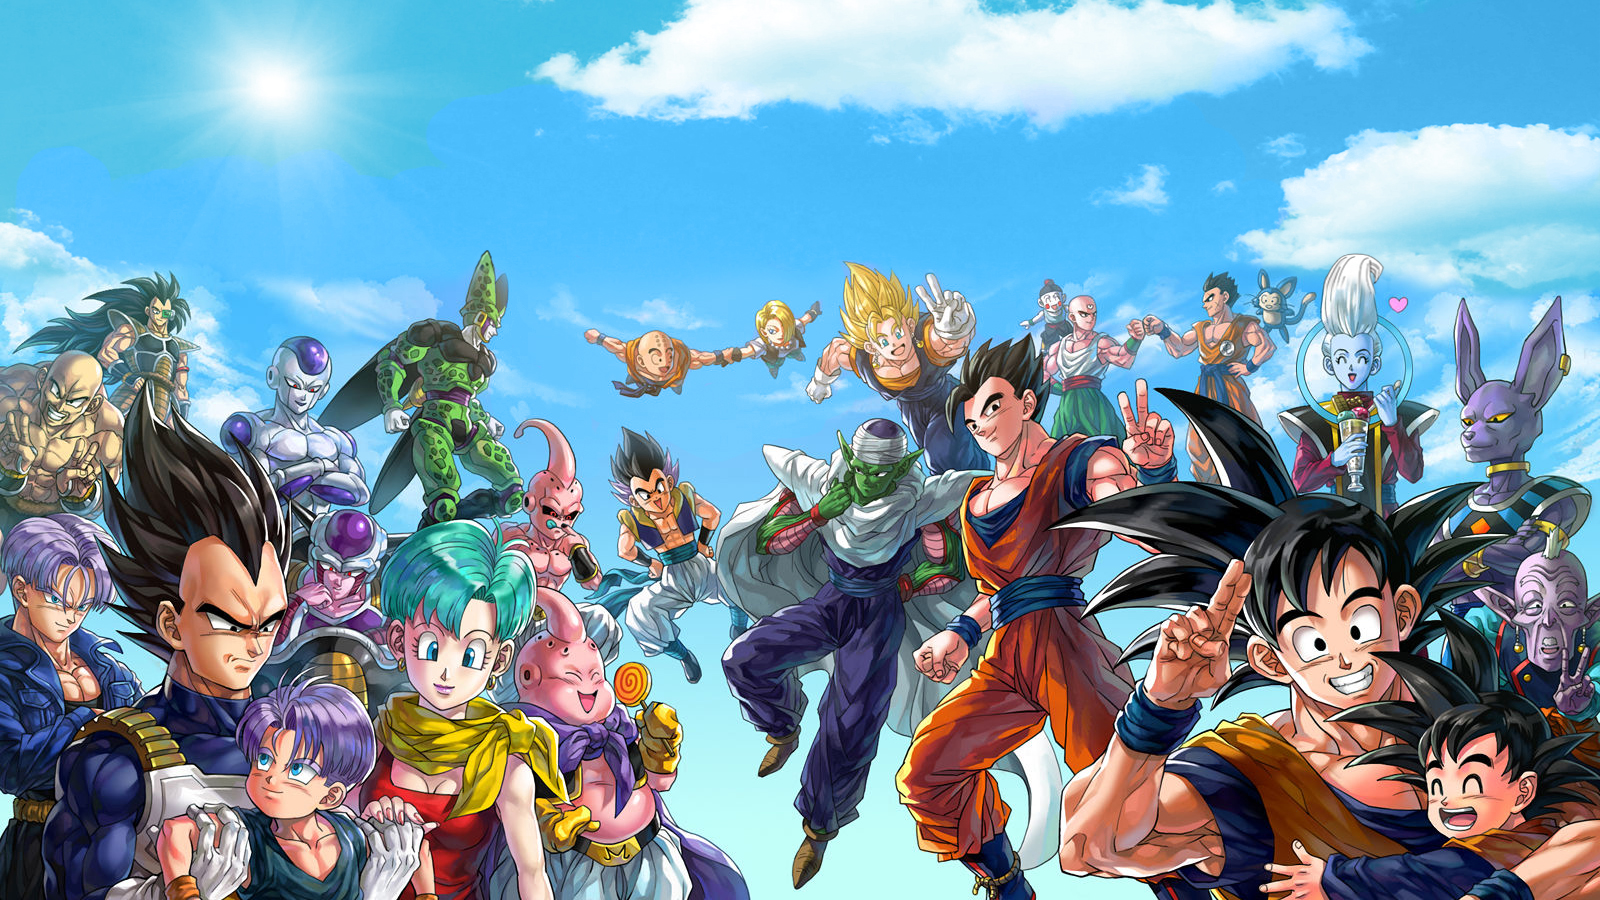 Dragon Ball Z Wallpaper and Background Image | 1600x900 | ID:873595 - Wallpaper Abyss